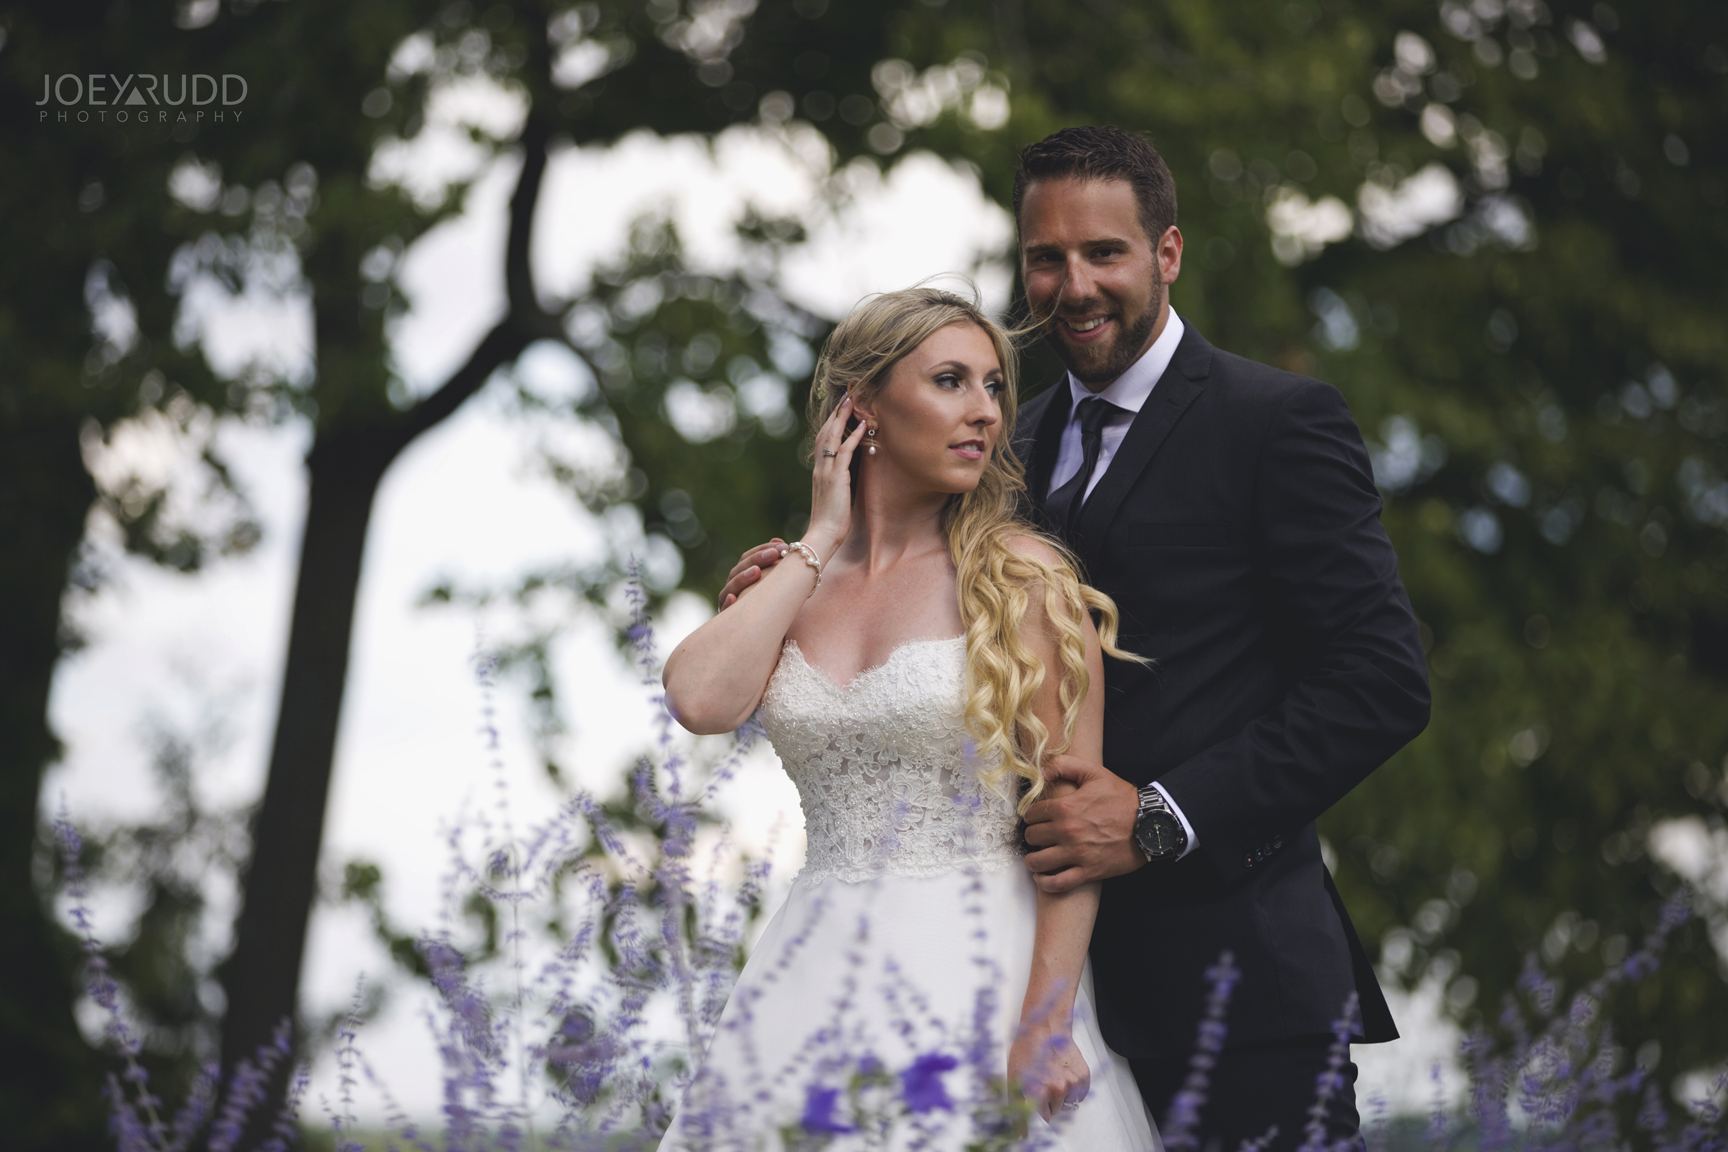 Calabogie Wedding at Barnet Park by Ottawa Wedding Photographer Joey Rudd Photography Dramatic